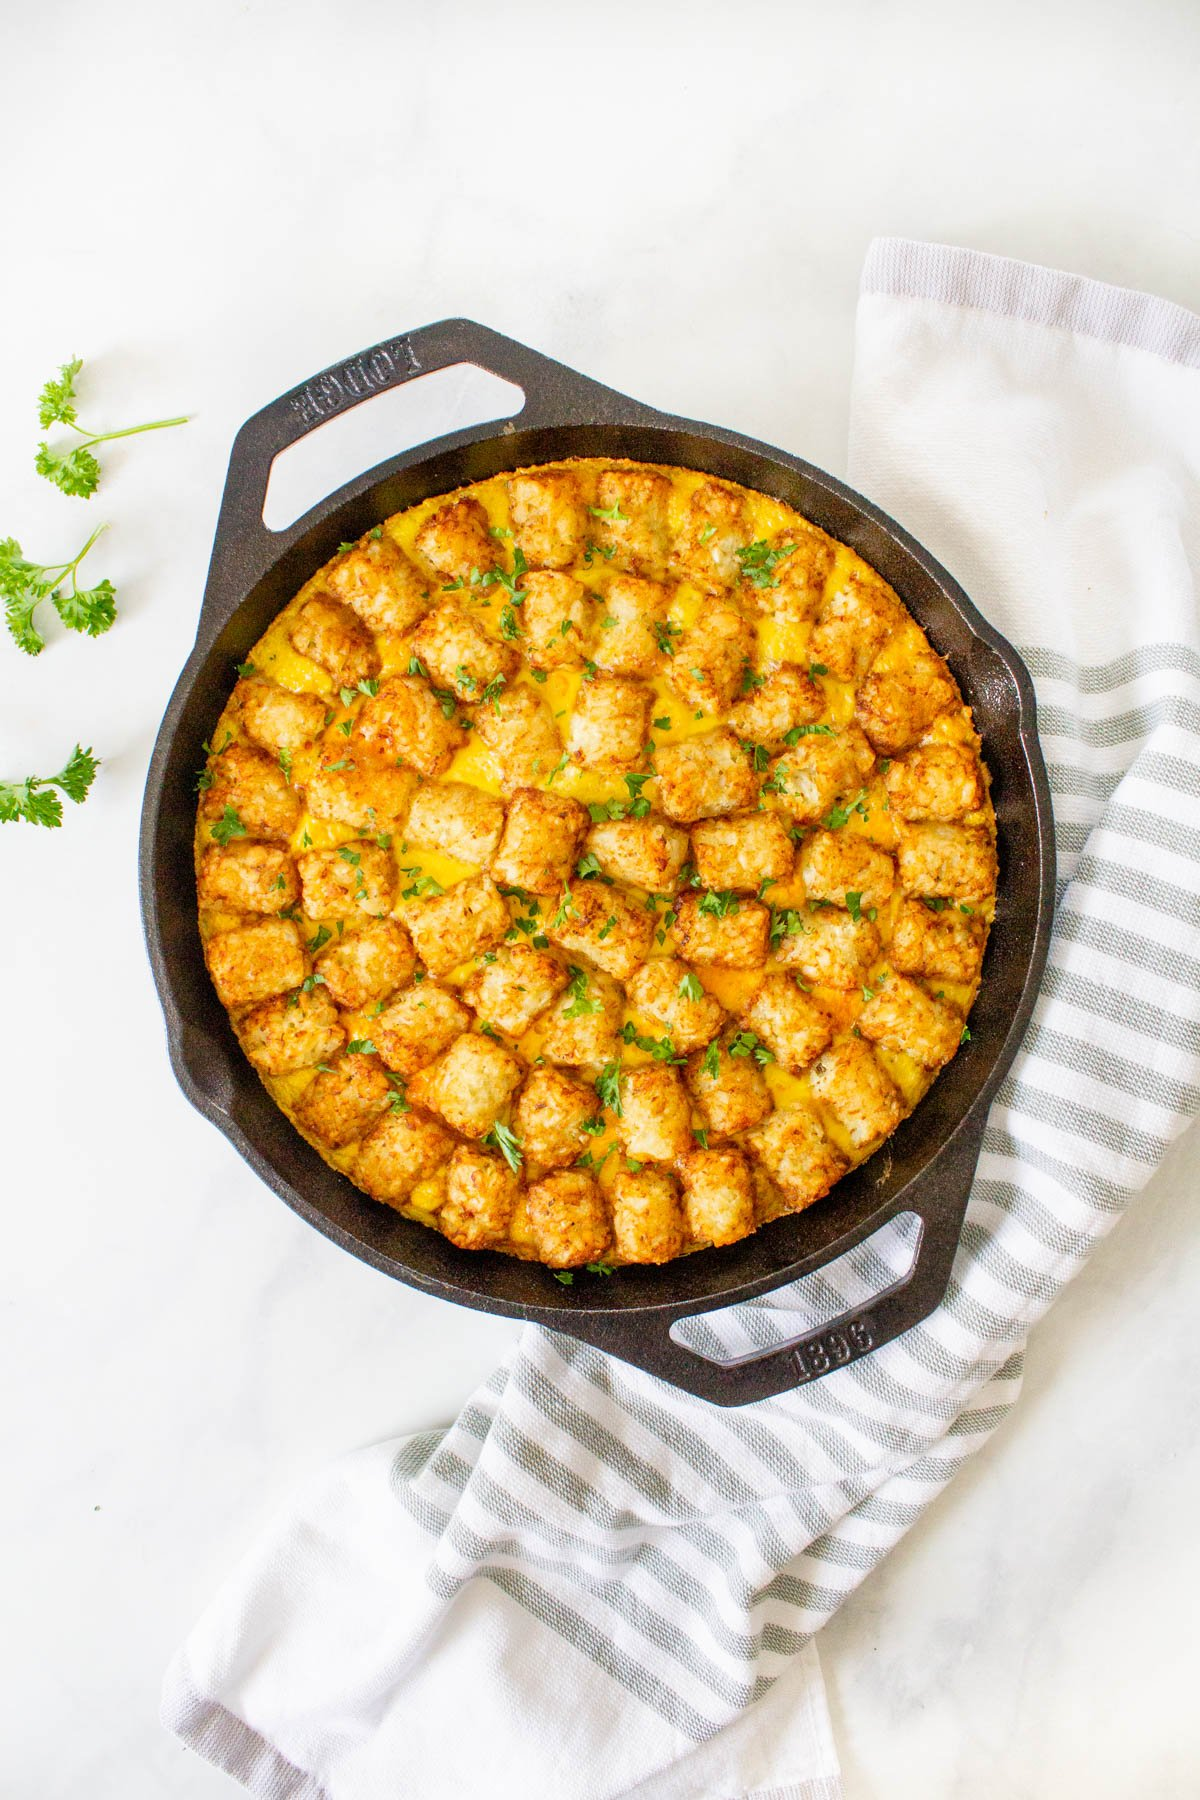 This Vegan Tater Tot Breakfast Casserole is loaded with vegan eggs, vegan sausage, tempeh bacon and veggies. The perfect vegan brunch or meal prep breakfast   ThisSavoryVegan.com #thissavoryvegan #veganbrunch #vegancasserole